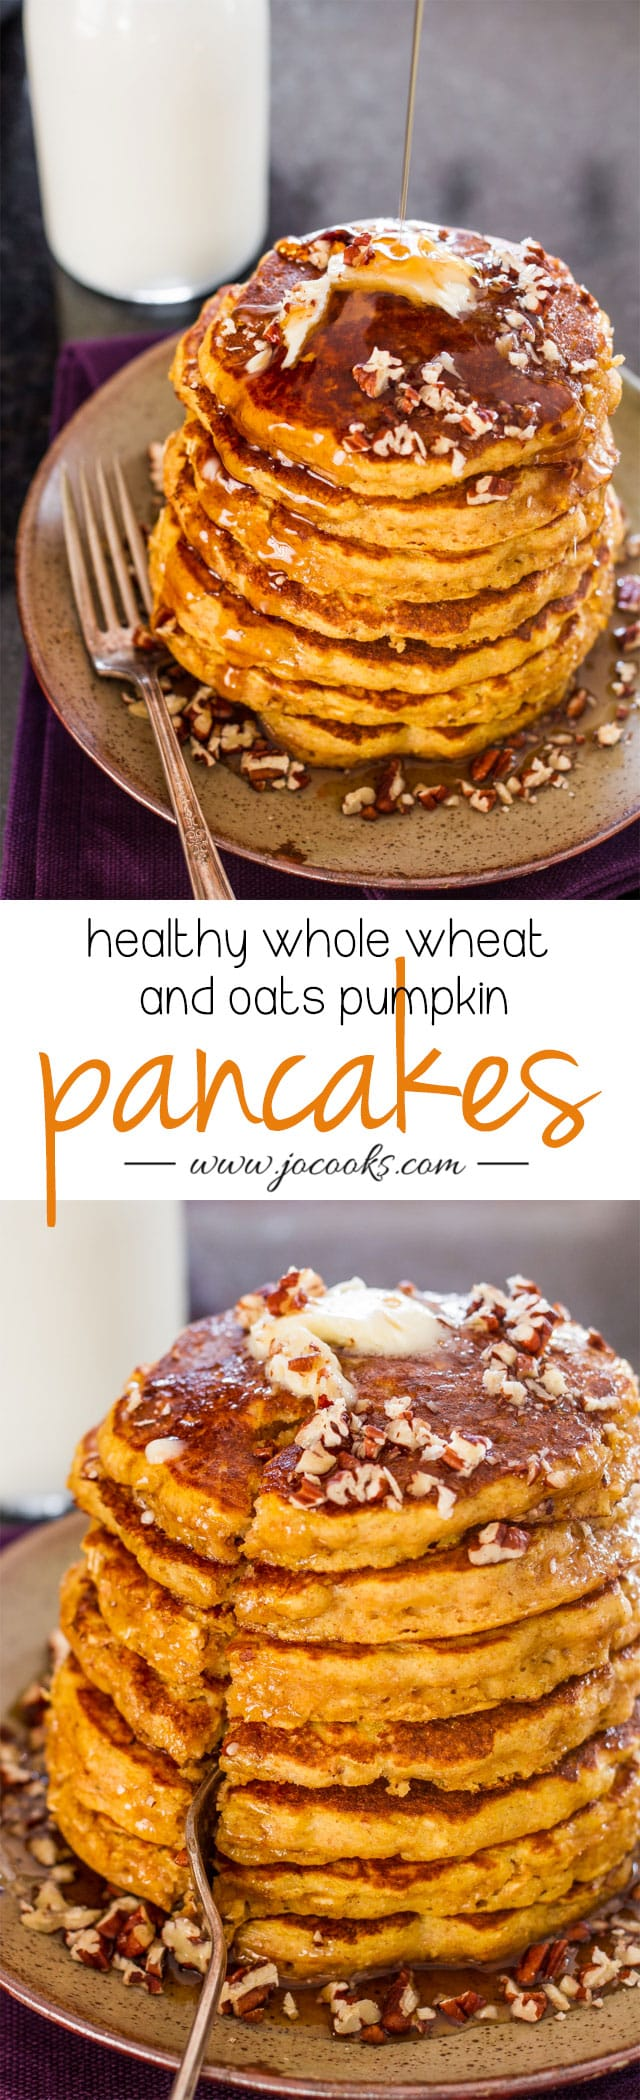 Healthy Whole Wheat and Oats Pumpkin Pancakes - super healthy pumpkin pancakes, no oil, no fat, no guilt whole wheat and oats pancakes.